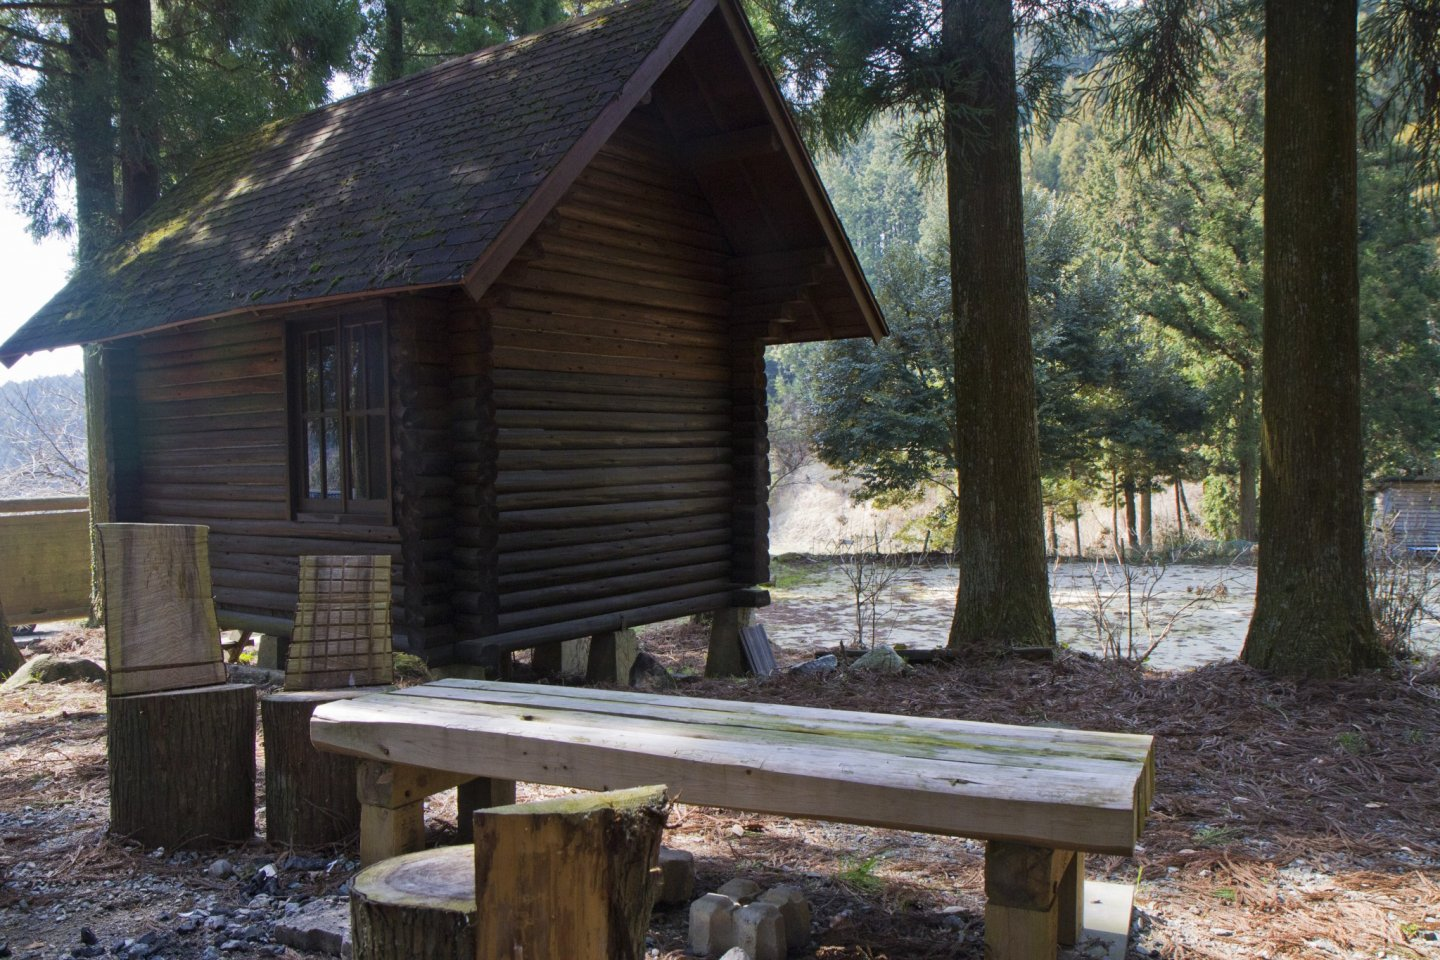 One of a half-dozen little log cabins